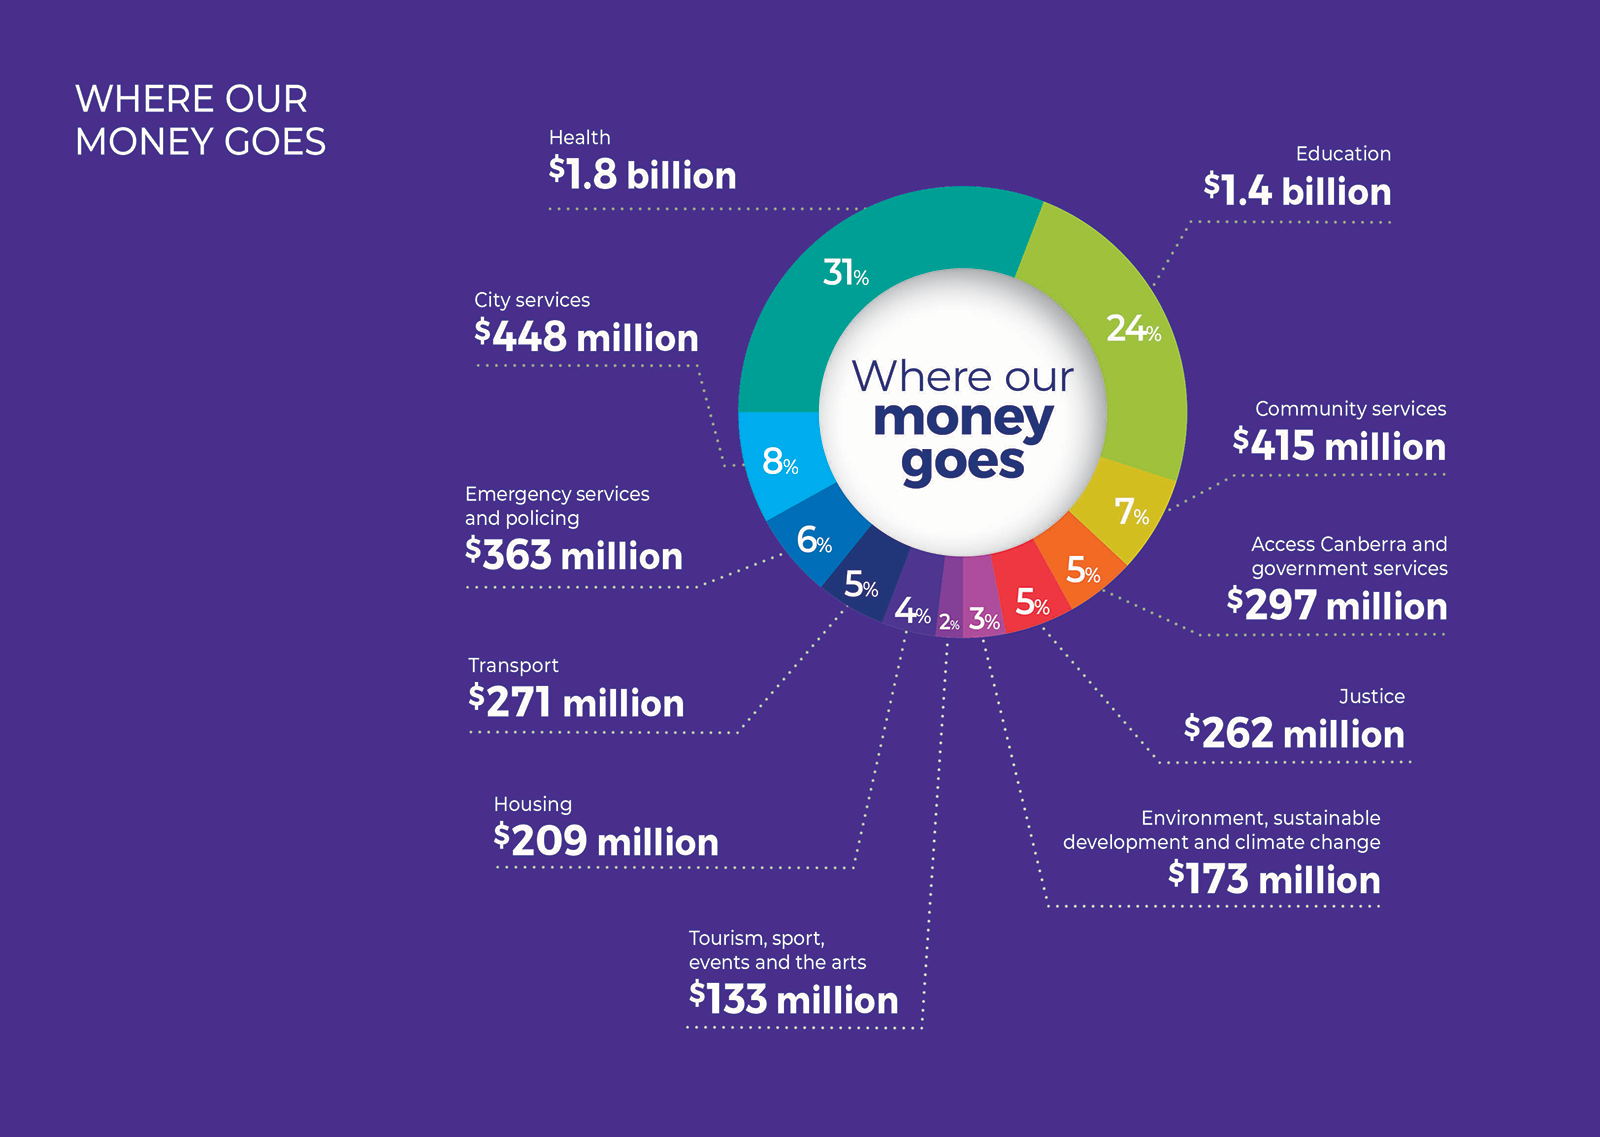 Where our money goes - Health $1.8 billion, Education $1.4 billion, Community services $415 million, City services $448 million, Emergency services and policing $363 million, Access Canberra and government services $297 million, Transport $271 million, Ju